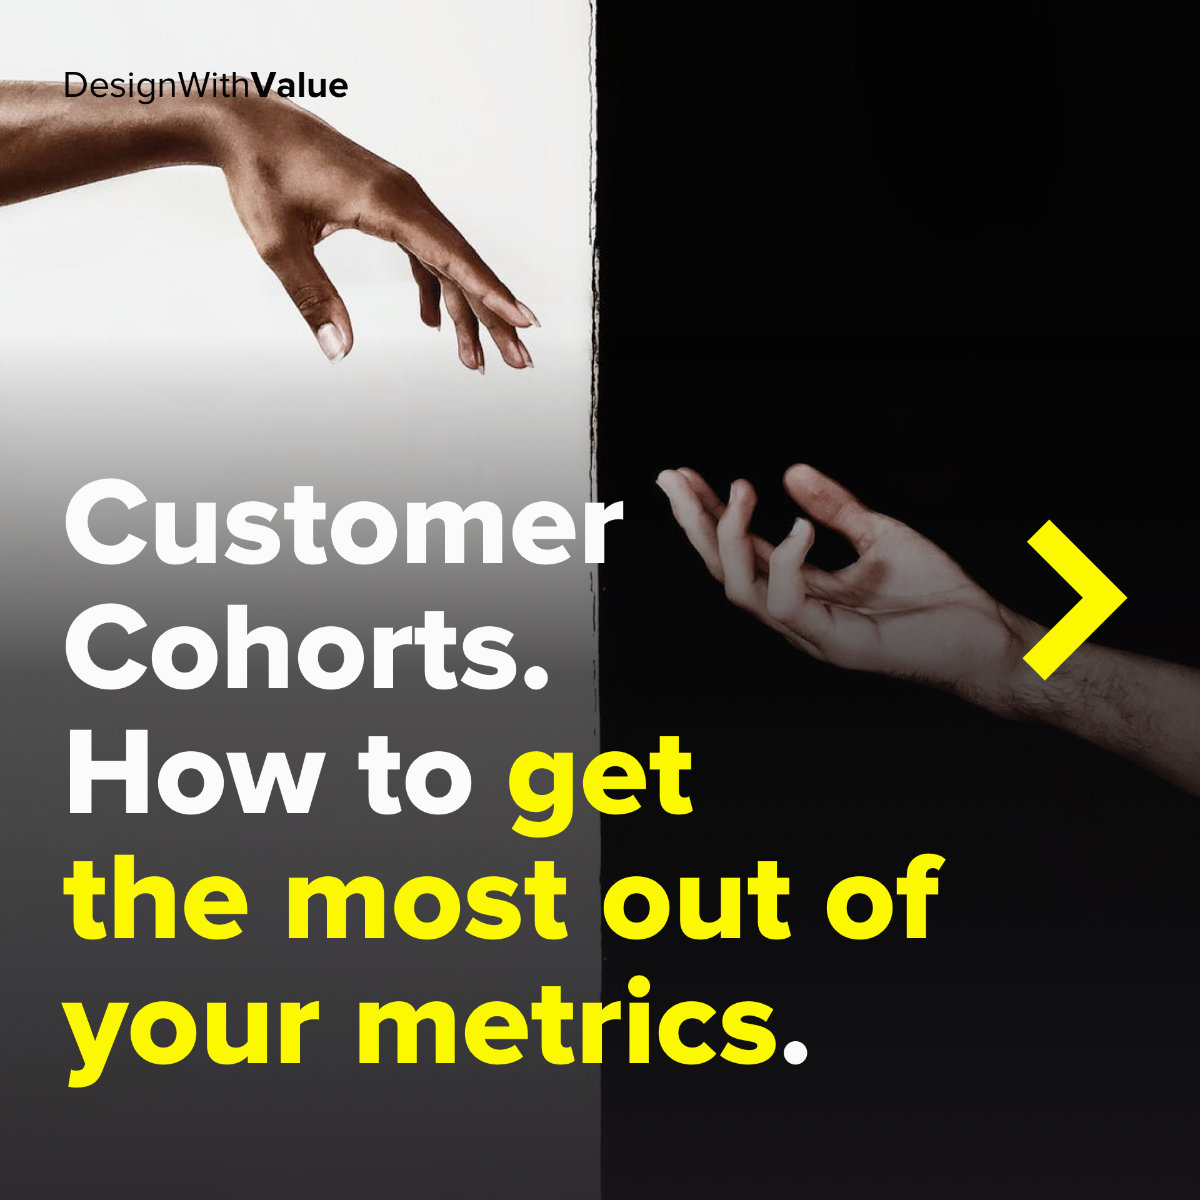 Customer cohorts. How to get the most out of your metrics.